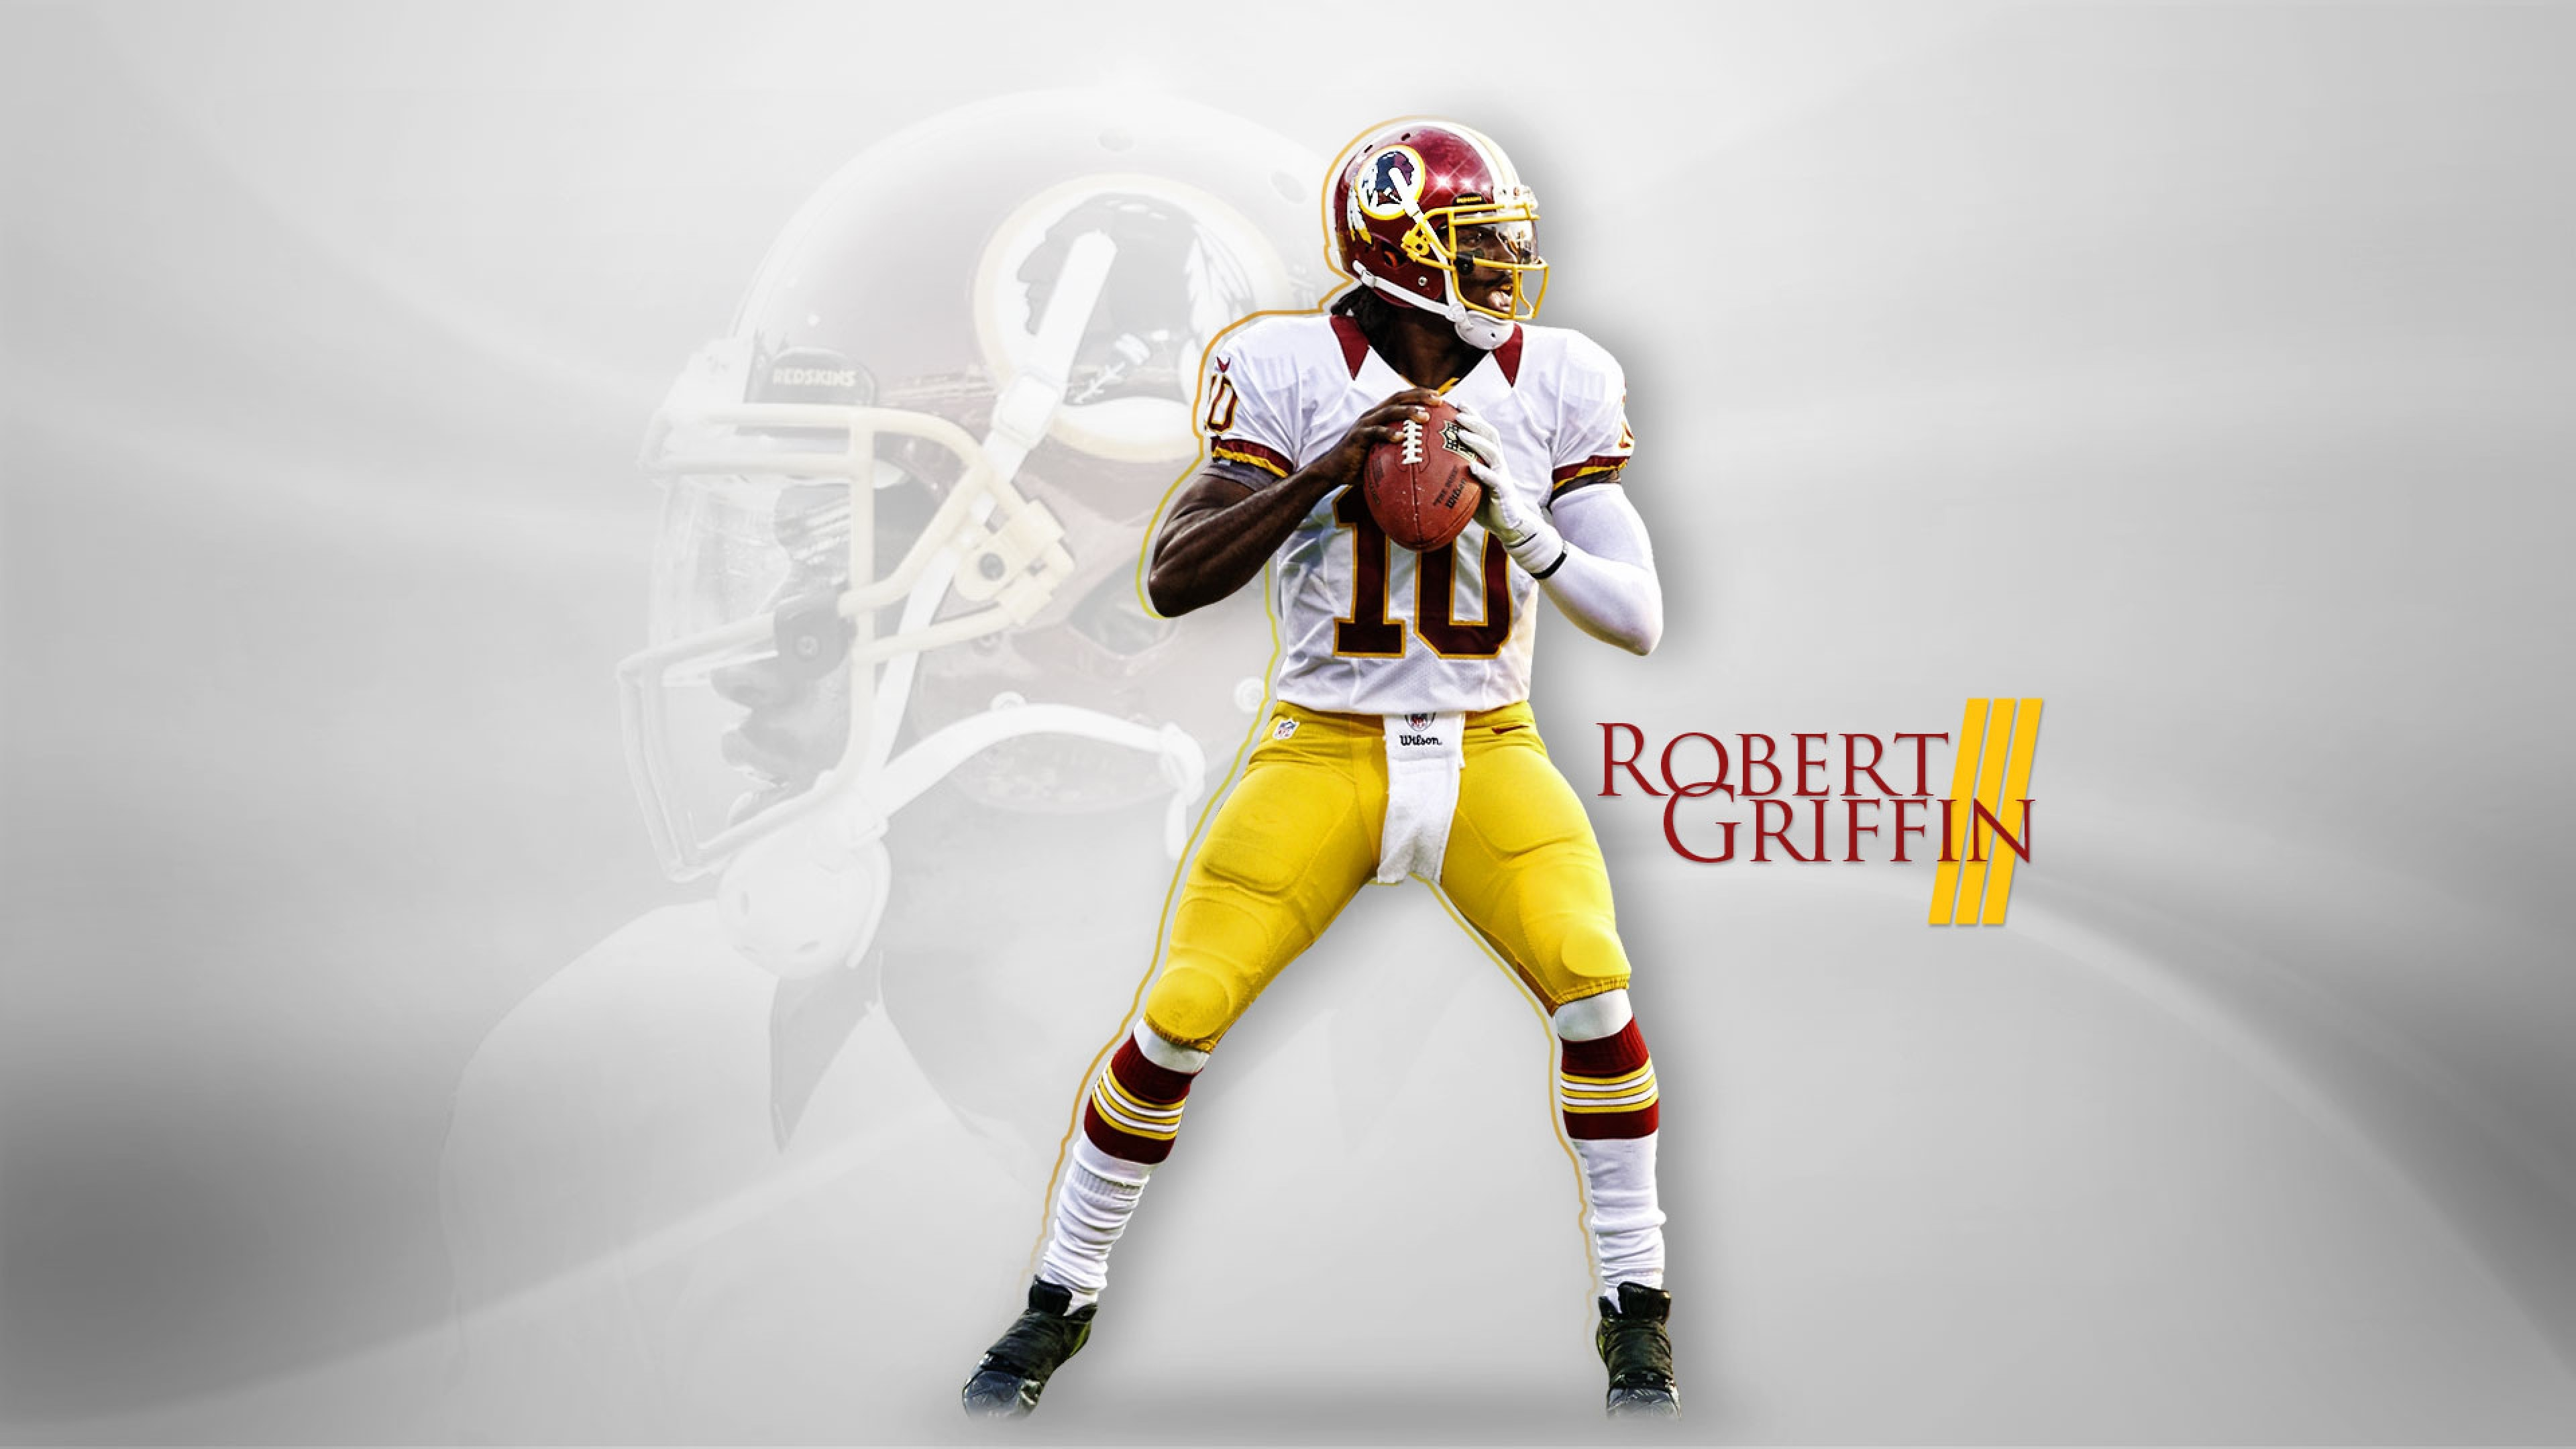 3840x2160  Wallpaper robert griffin iii, rg 3, american football,  quarterback, washington redskins